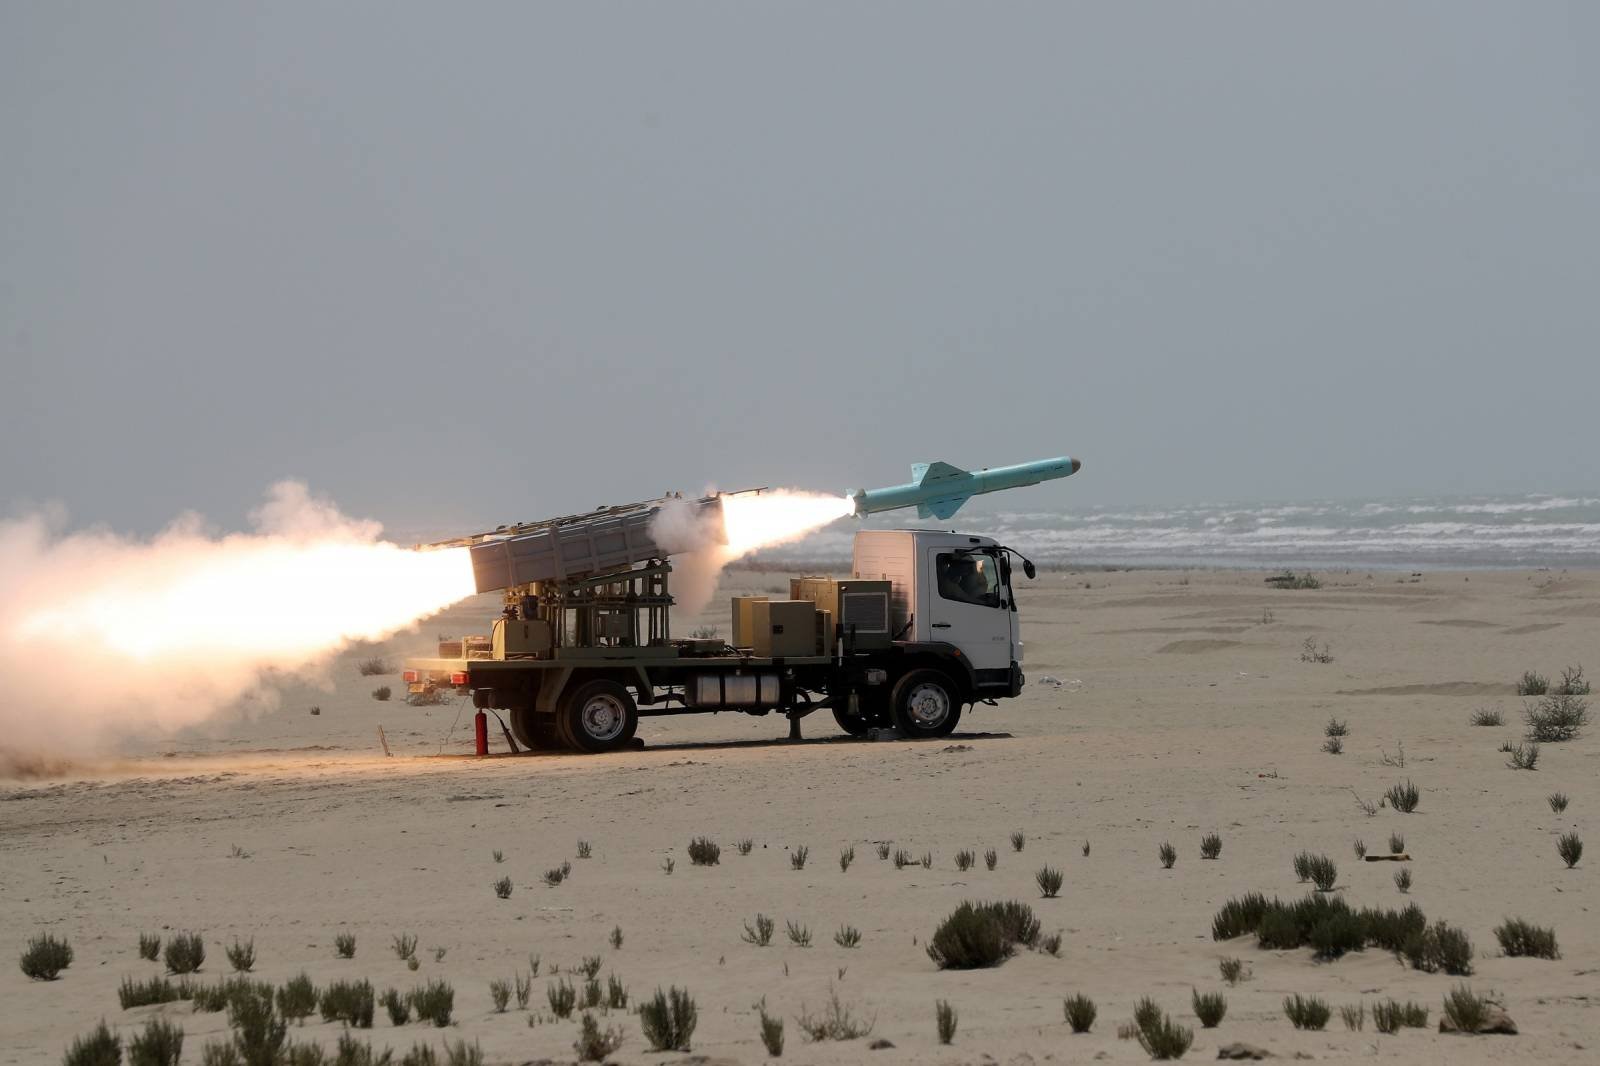 An Iranian locally made cruise missile is fired during war games in the northern Indian Ocean and near the entrance to the Gulf